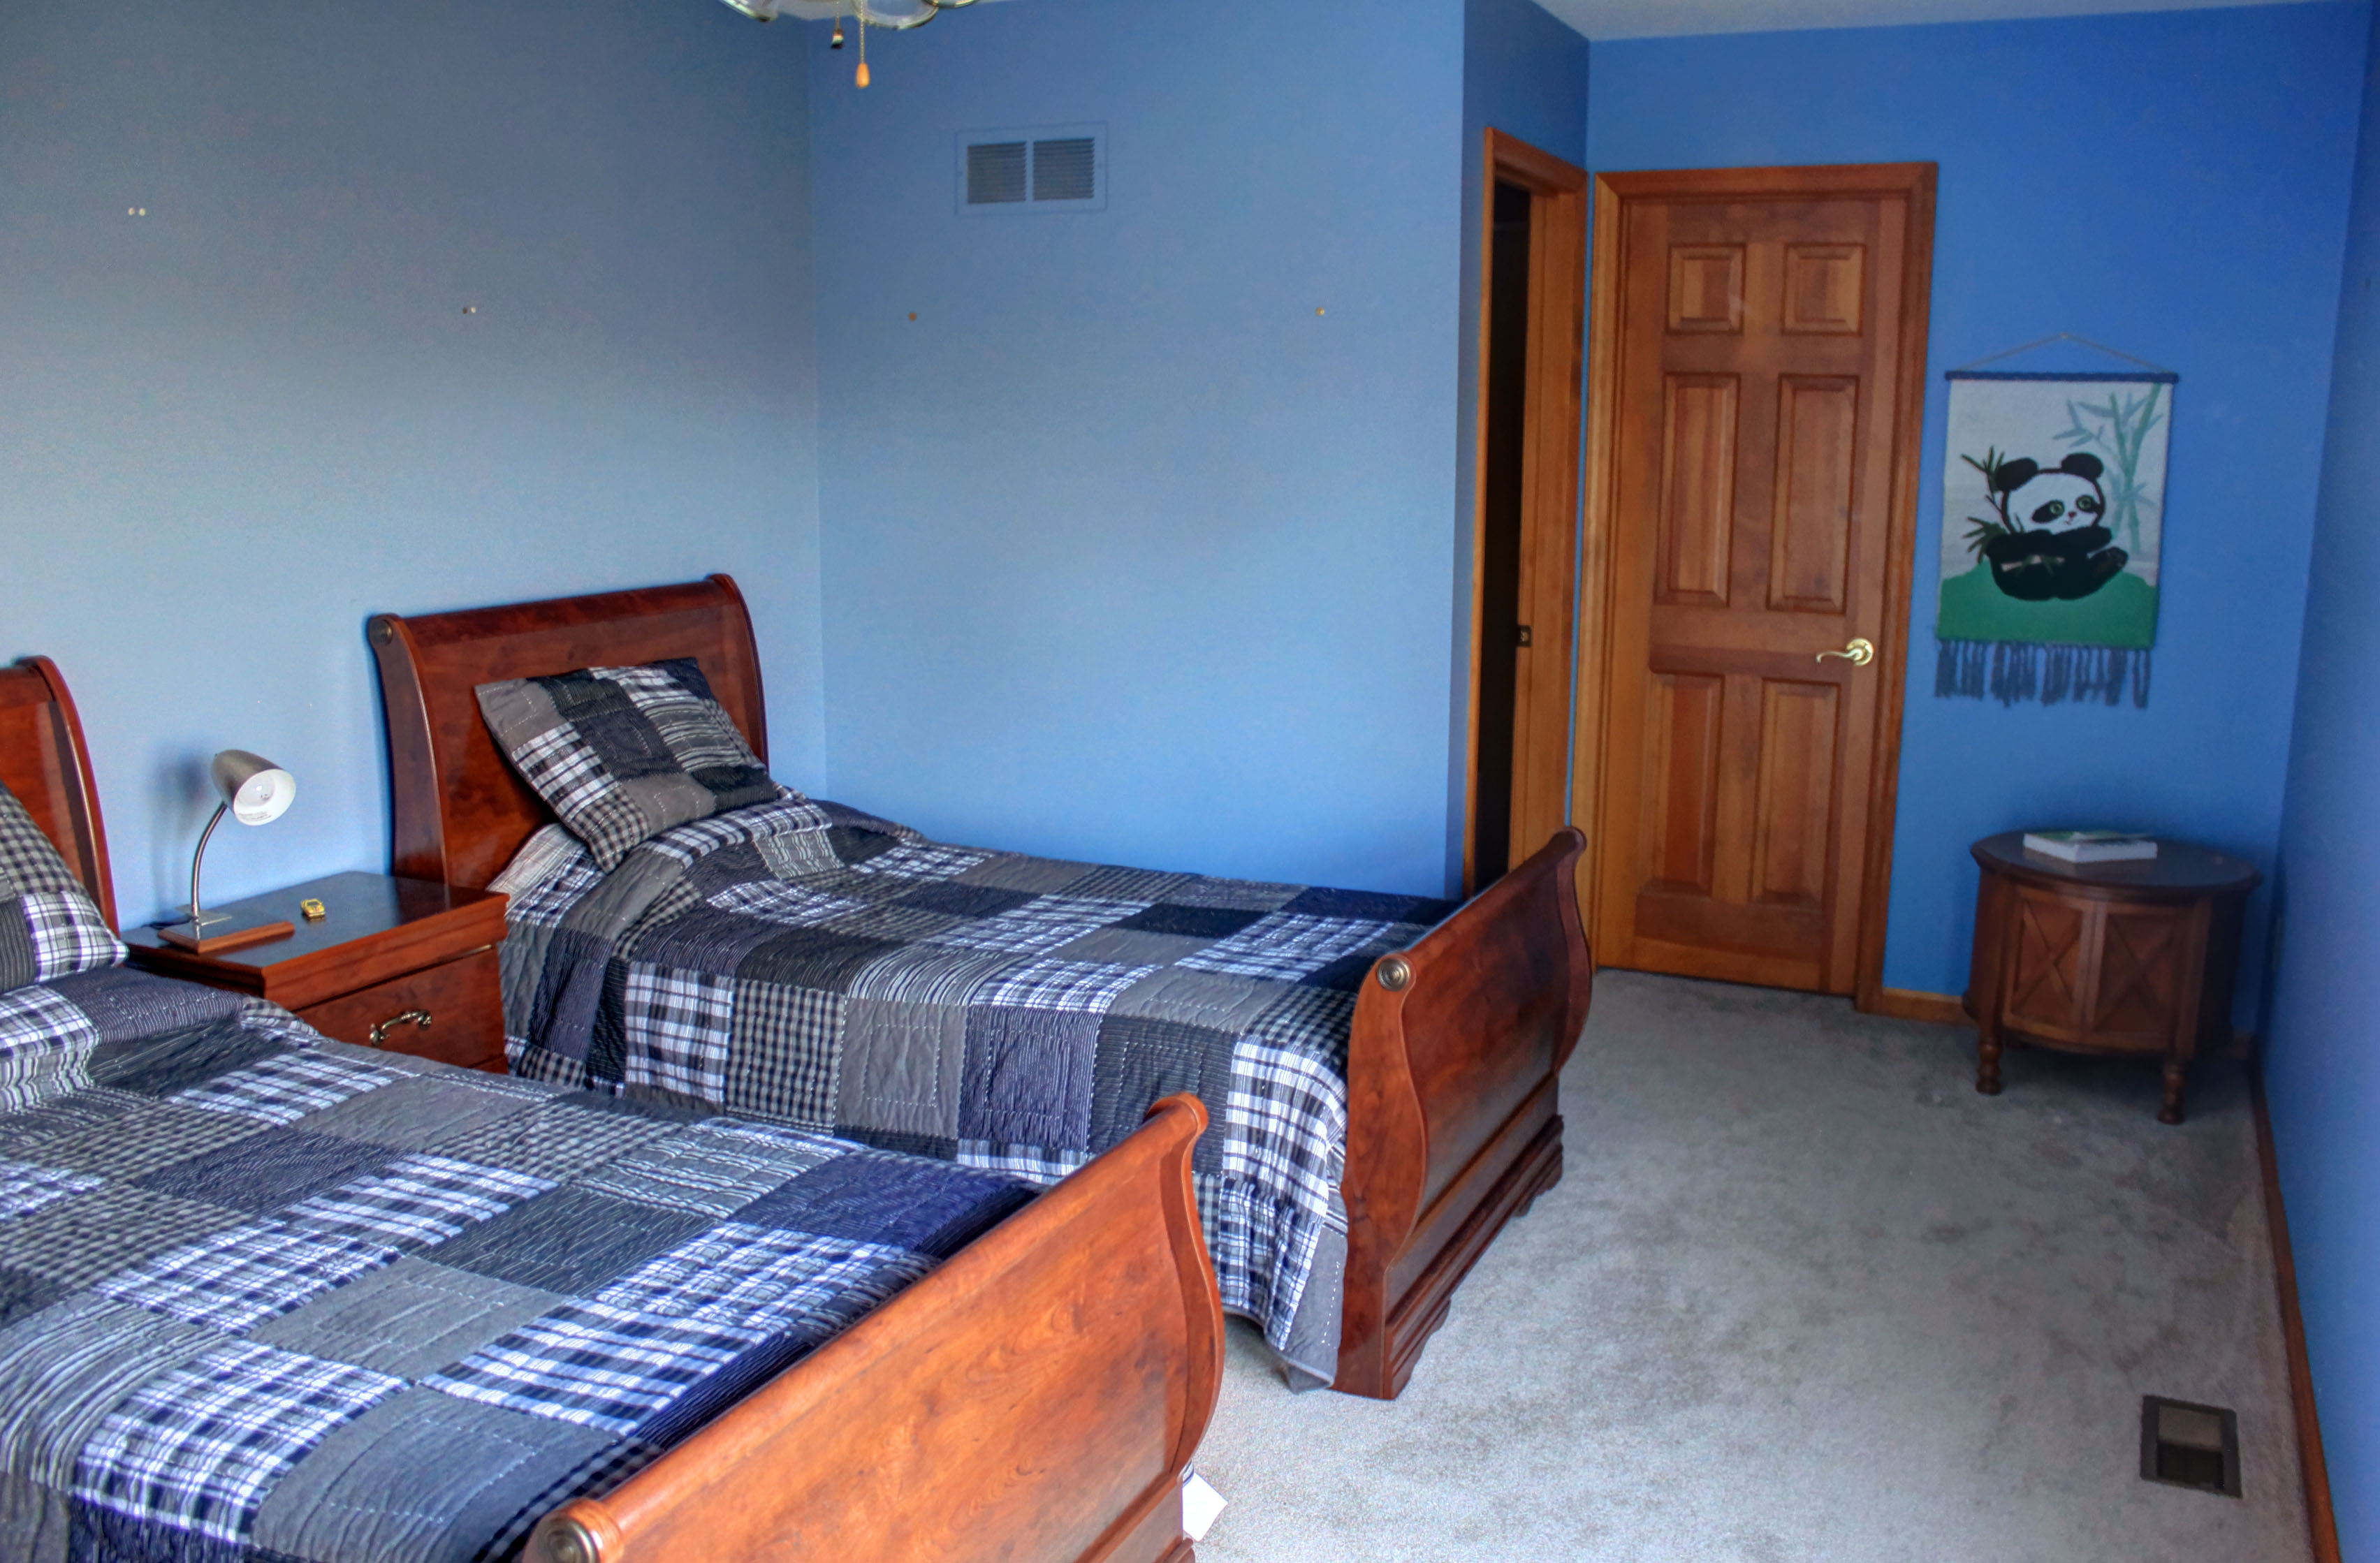 Cheap 1 Bedroom Apartments Near Me 2020 - Home Comforts